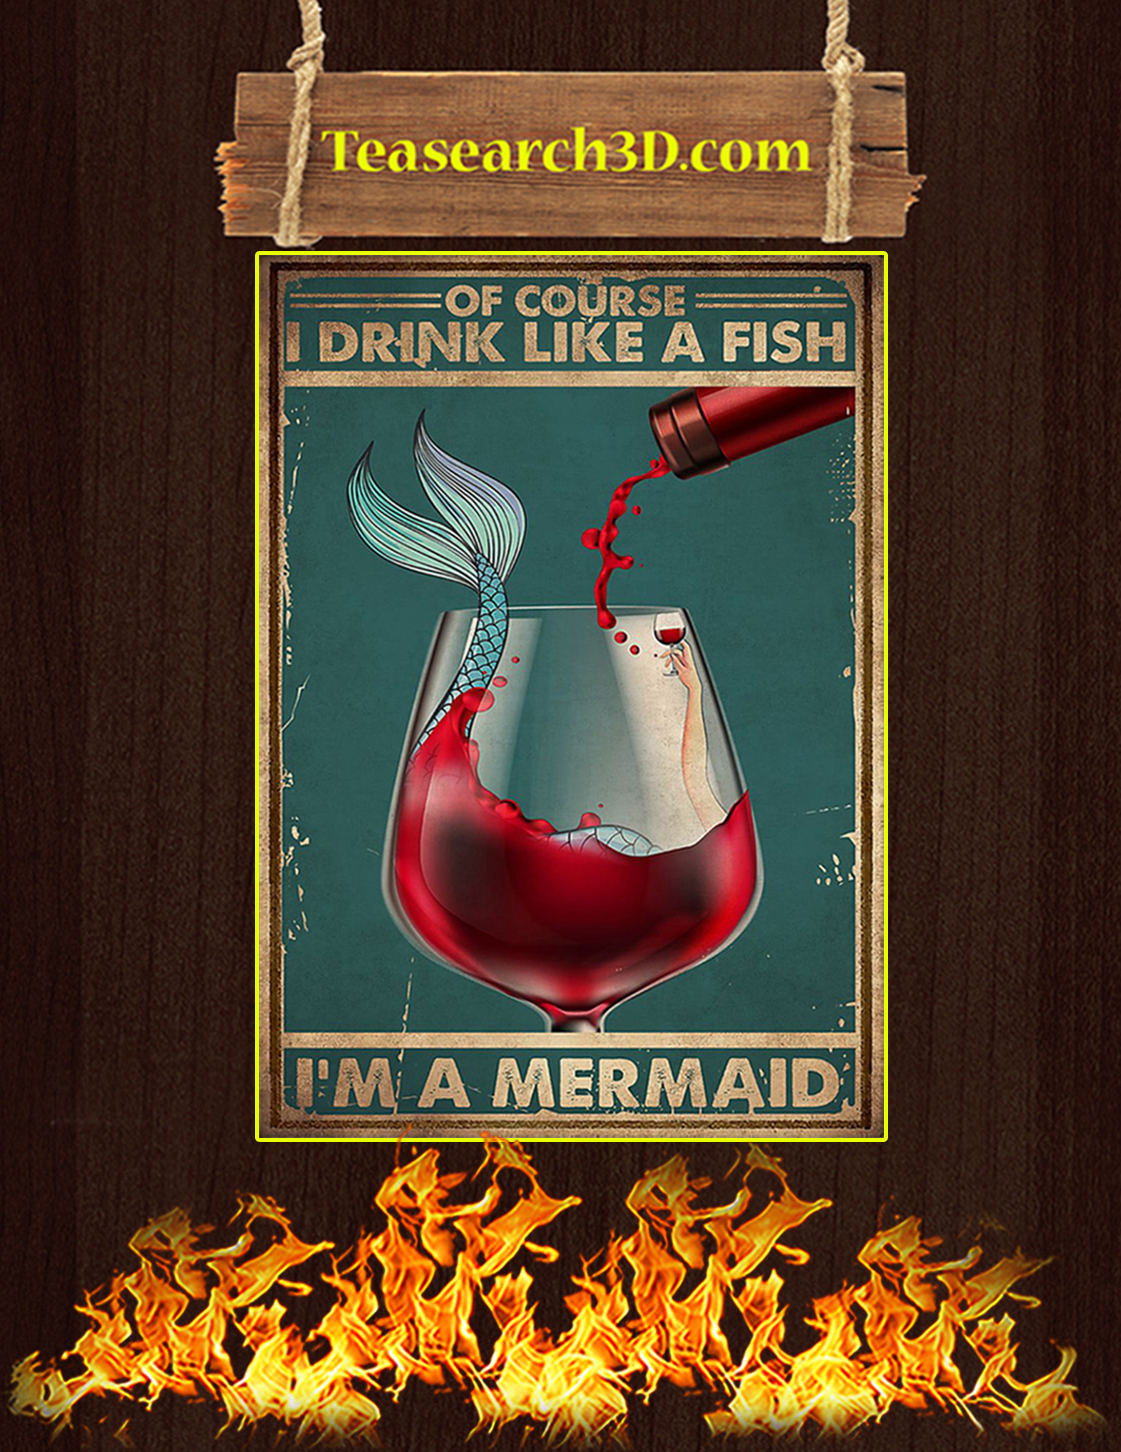 Wine of course I drink like a fish I'm a mermaid poster A3